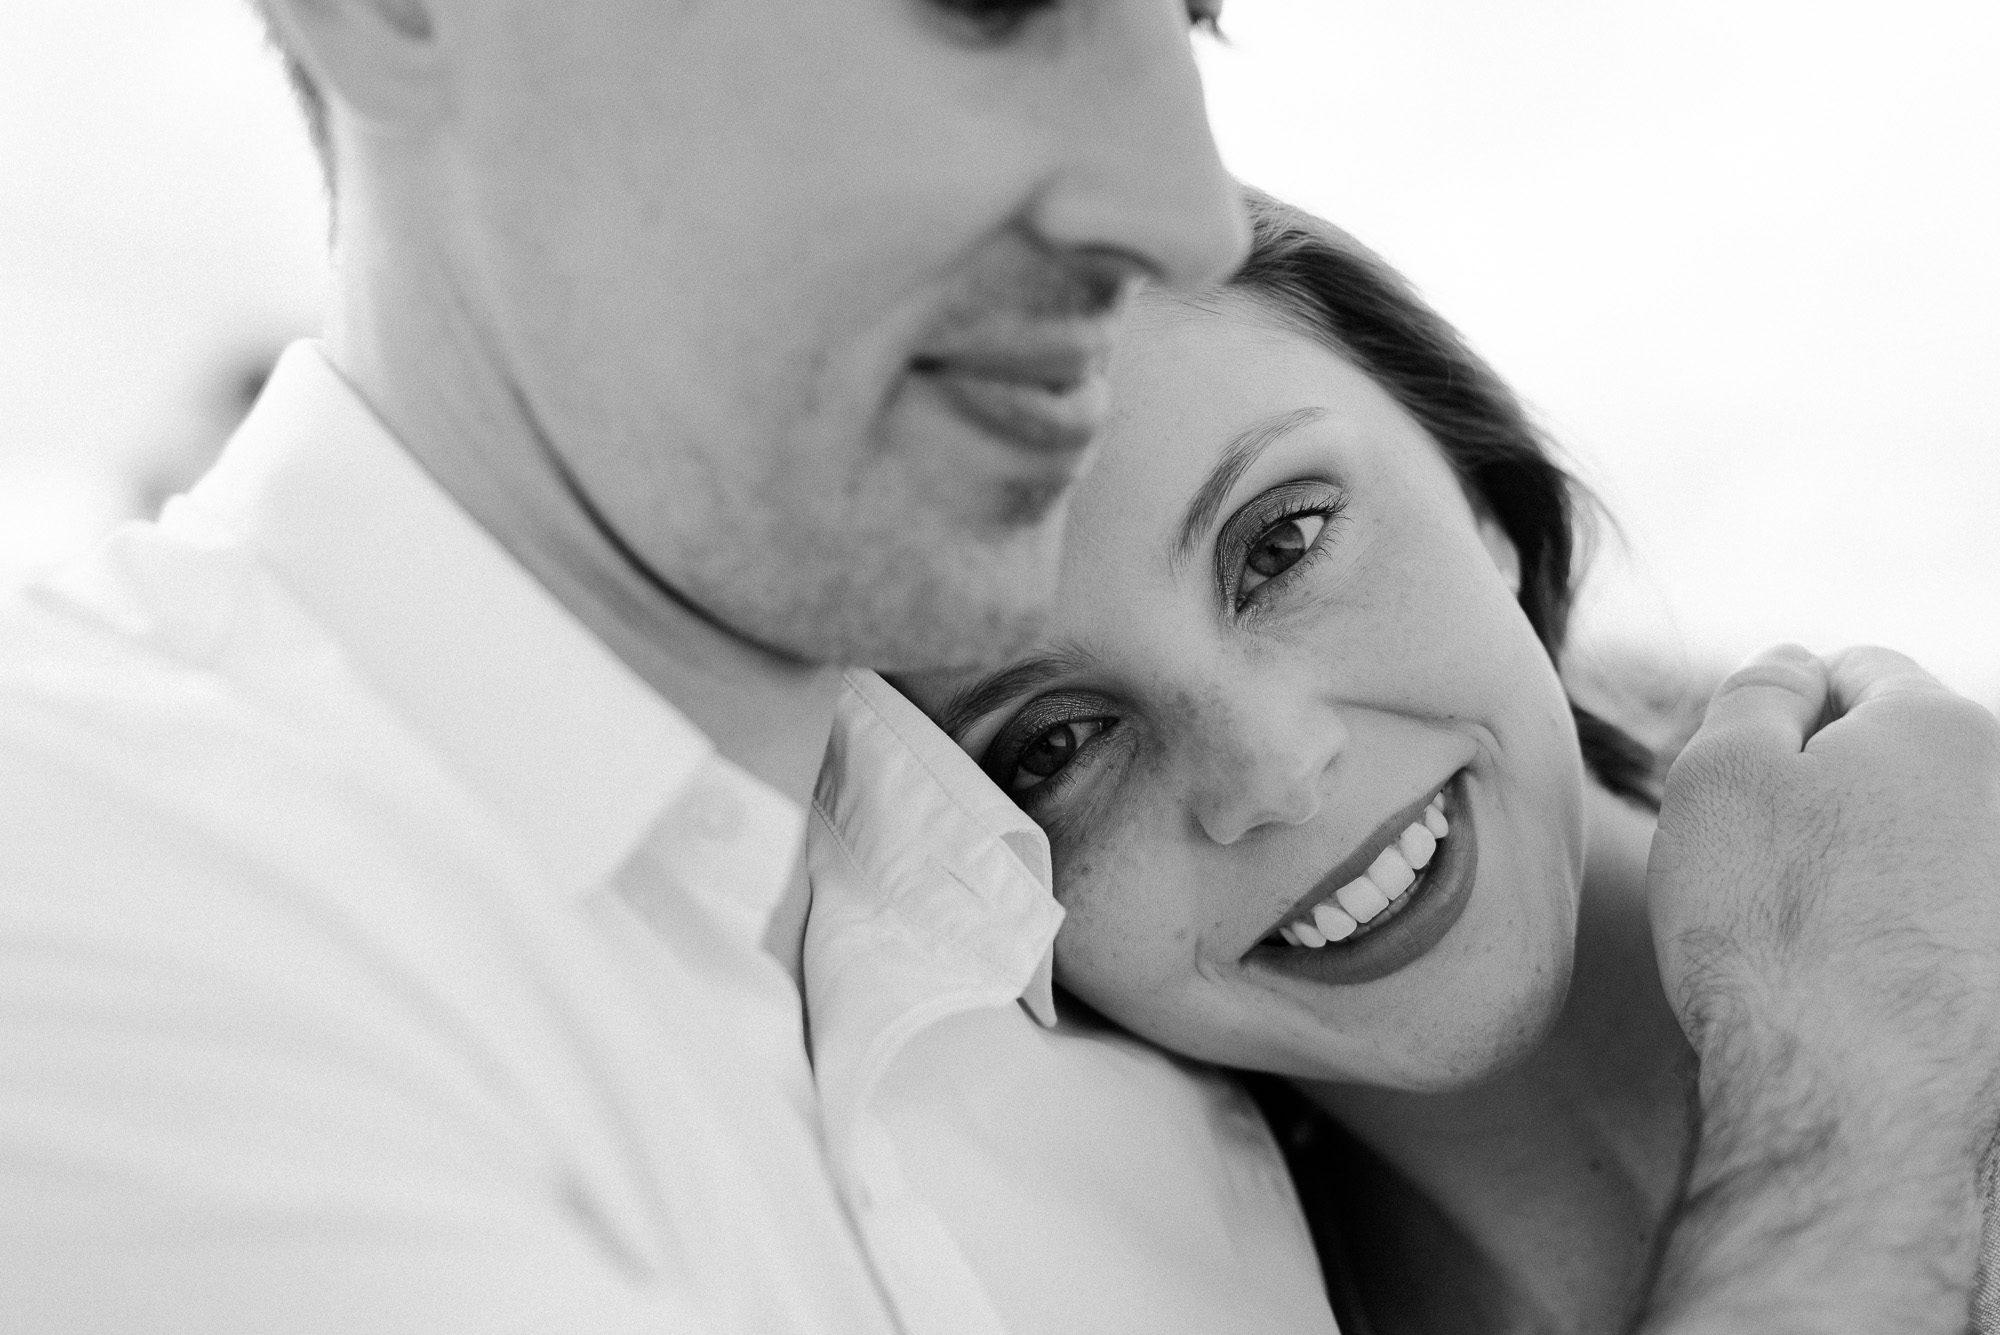 PhotographybyRenata_Proposal_Shoot_Watsons-Bay-Camp_Cove-92.JPG